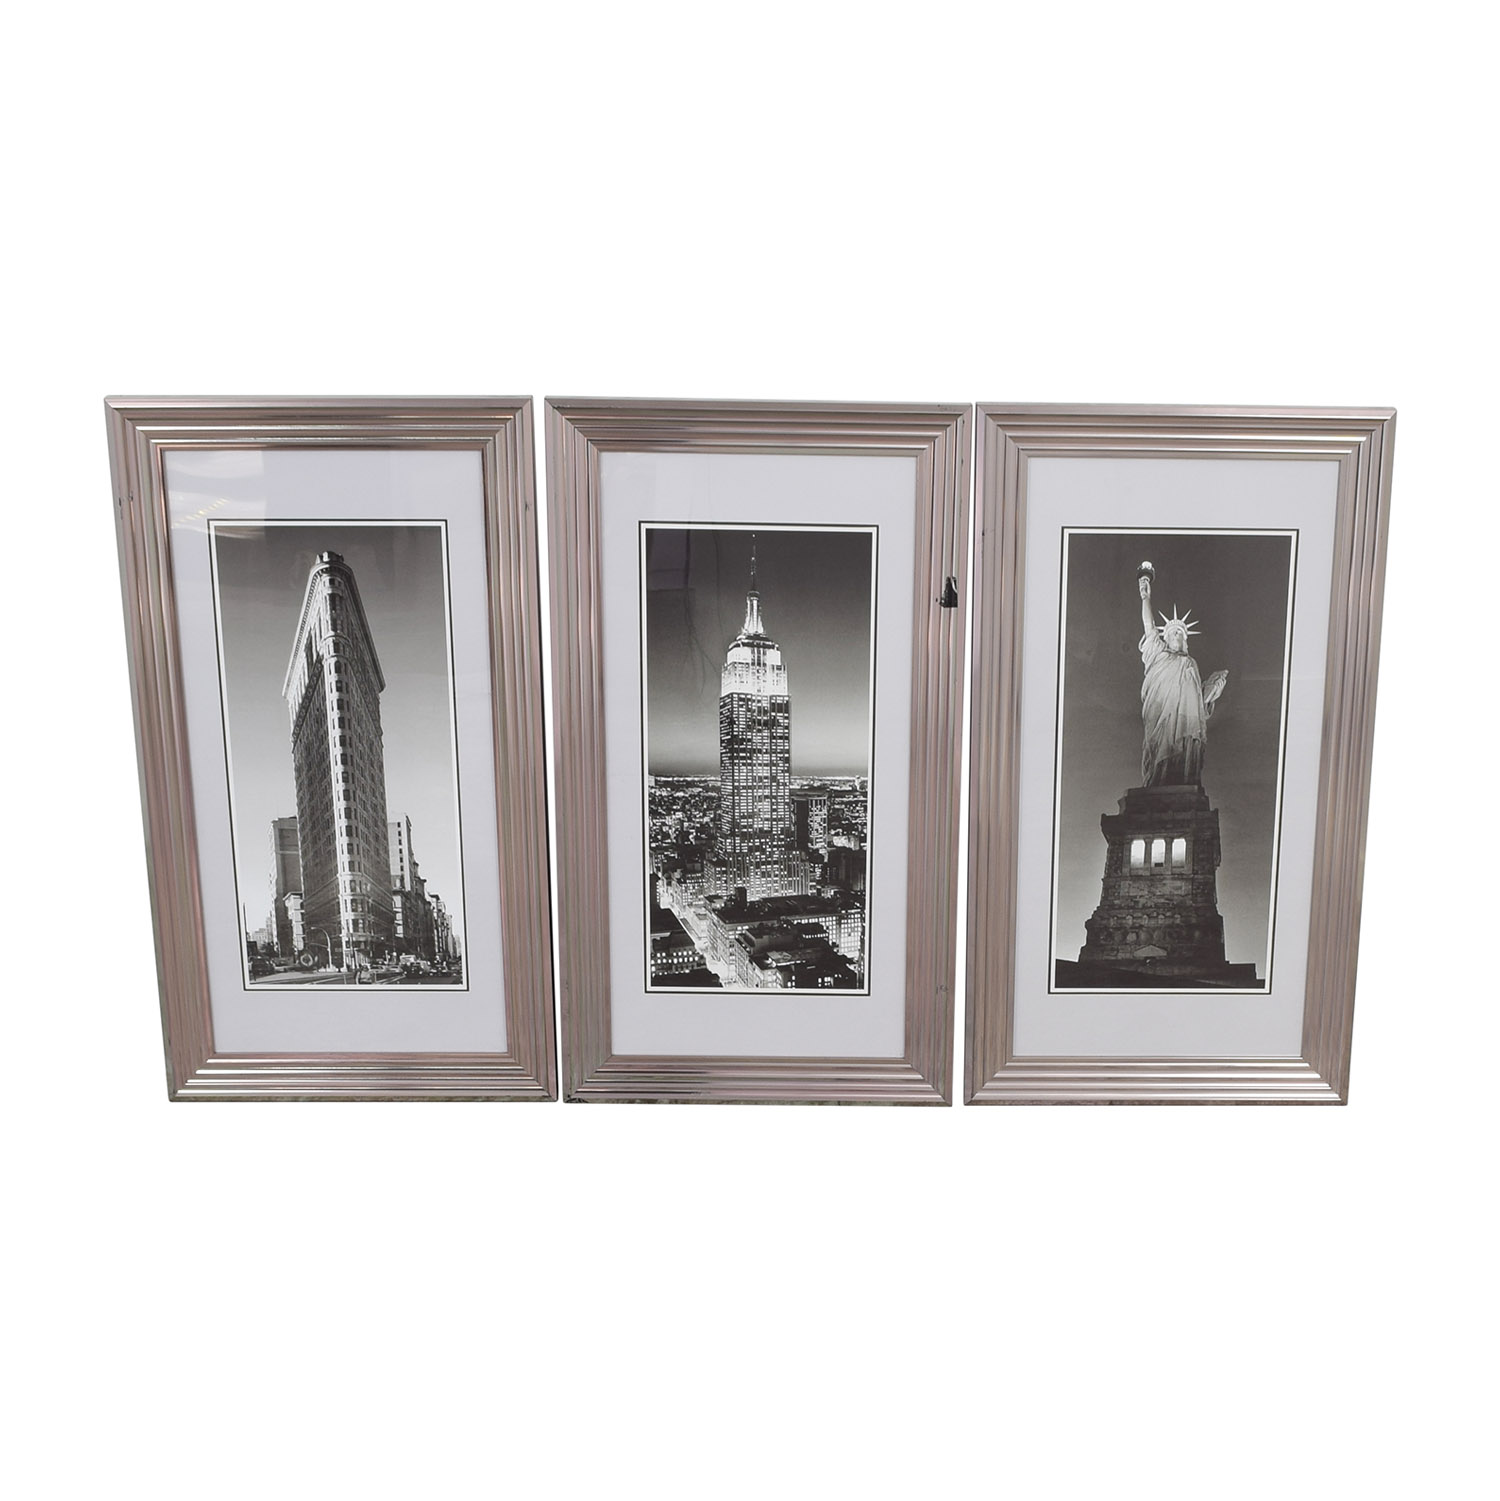 Modani Modani Framed NYC Landmark Prints for sale